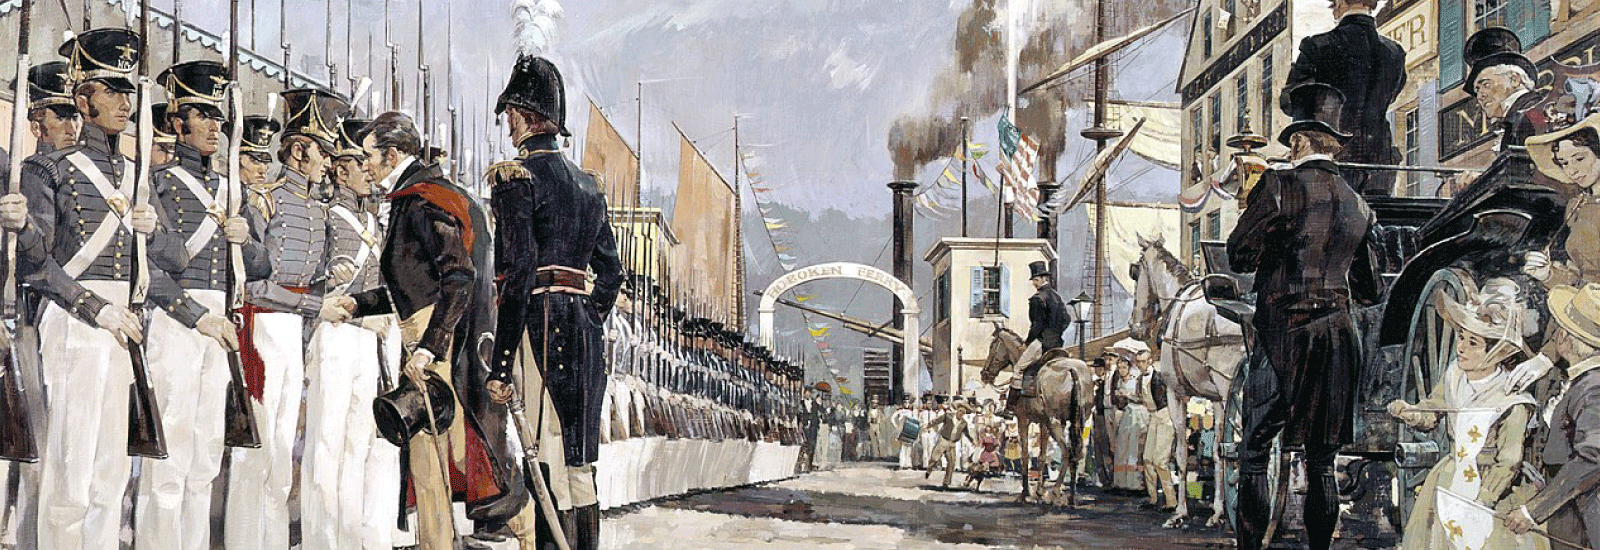 The National Guard in Early America